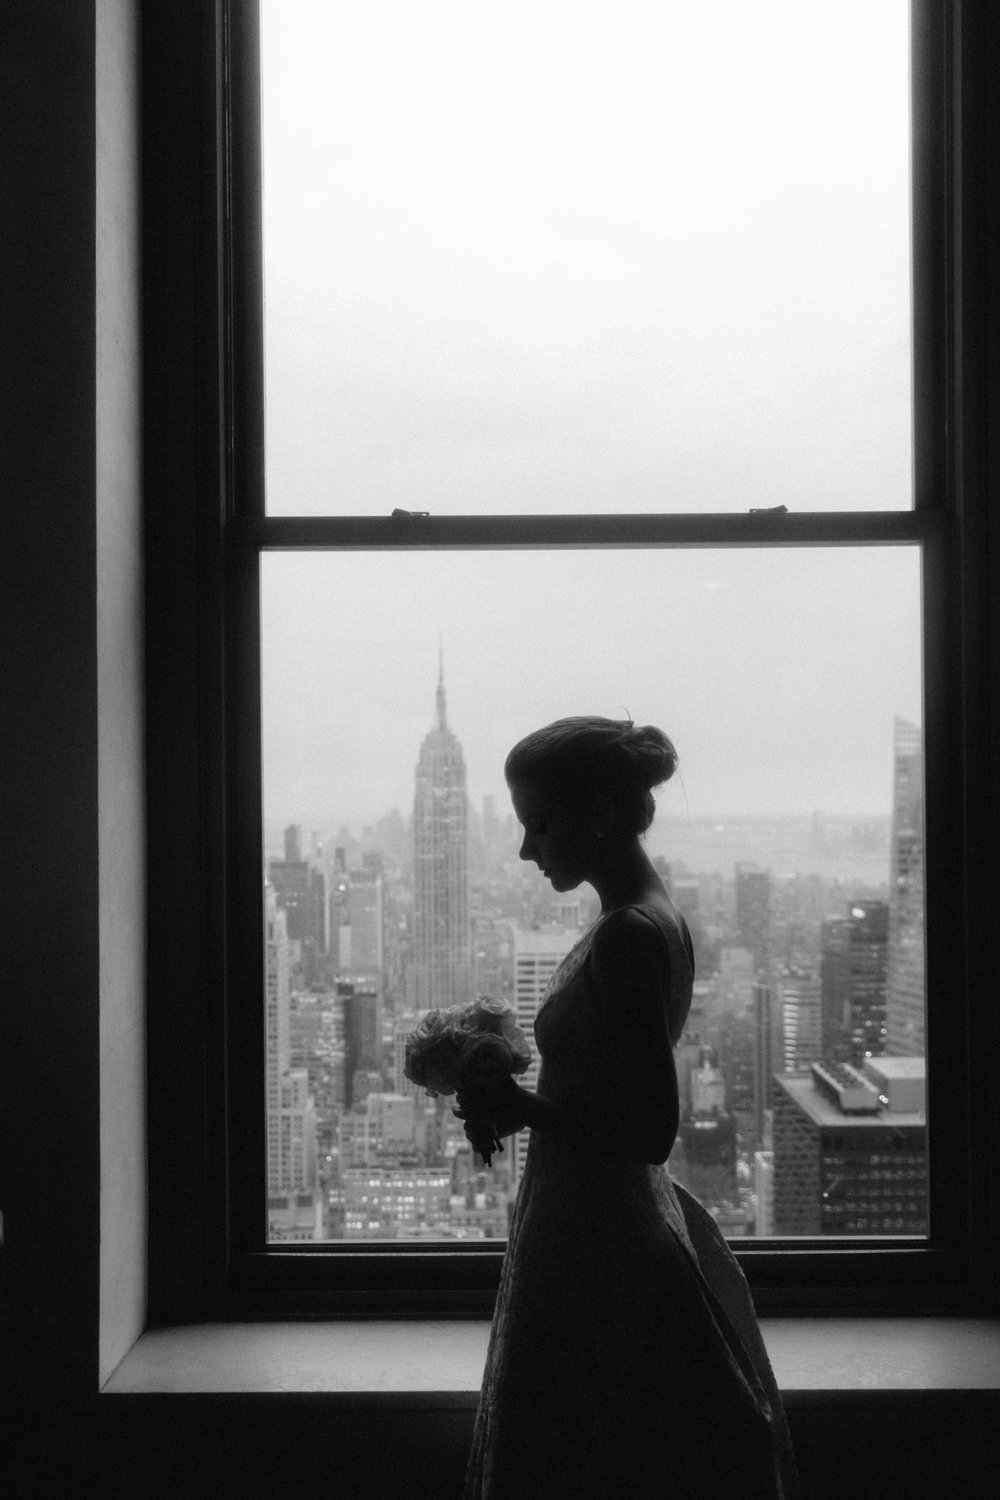 NYC-Top-of-the-Rock-wedding-photos-L&B-26.jpg